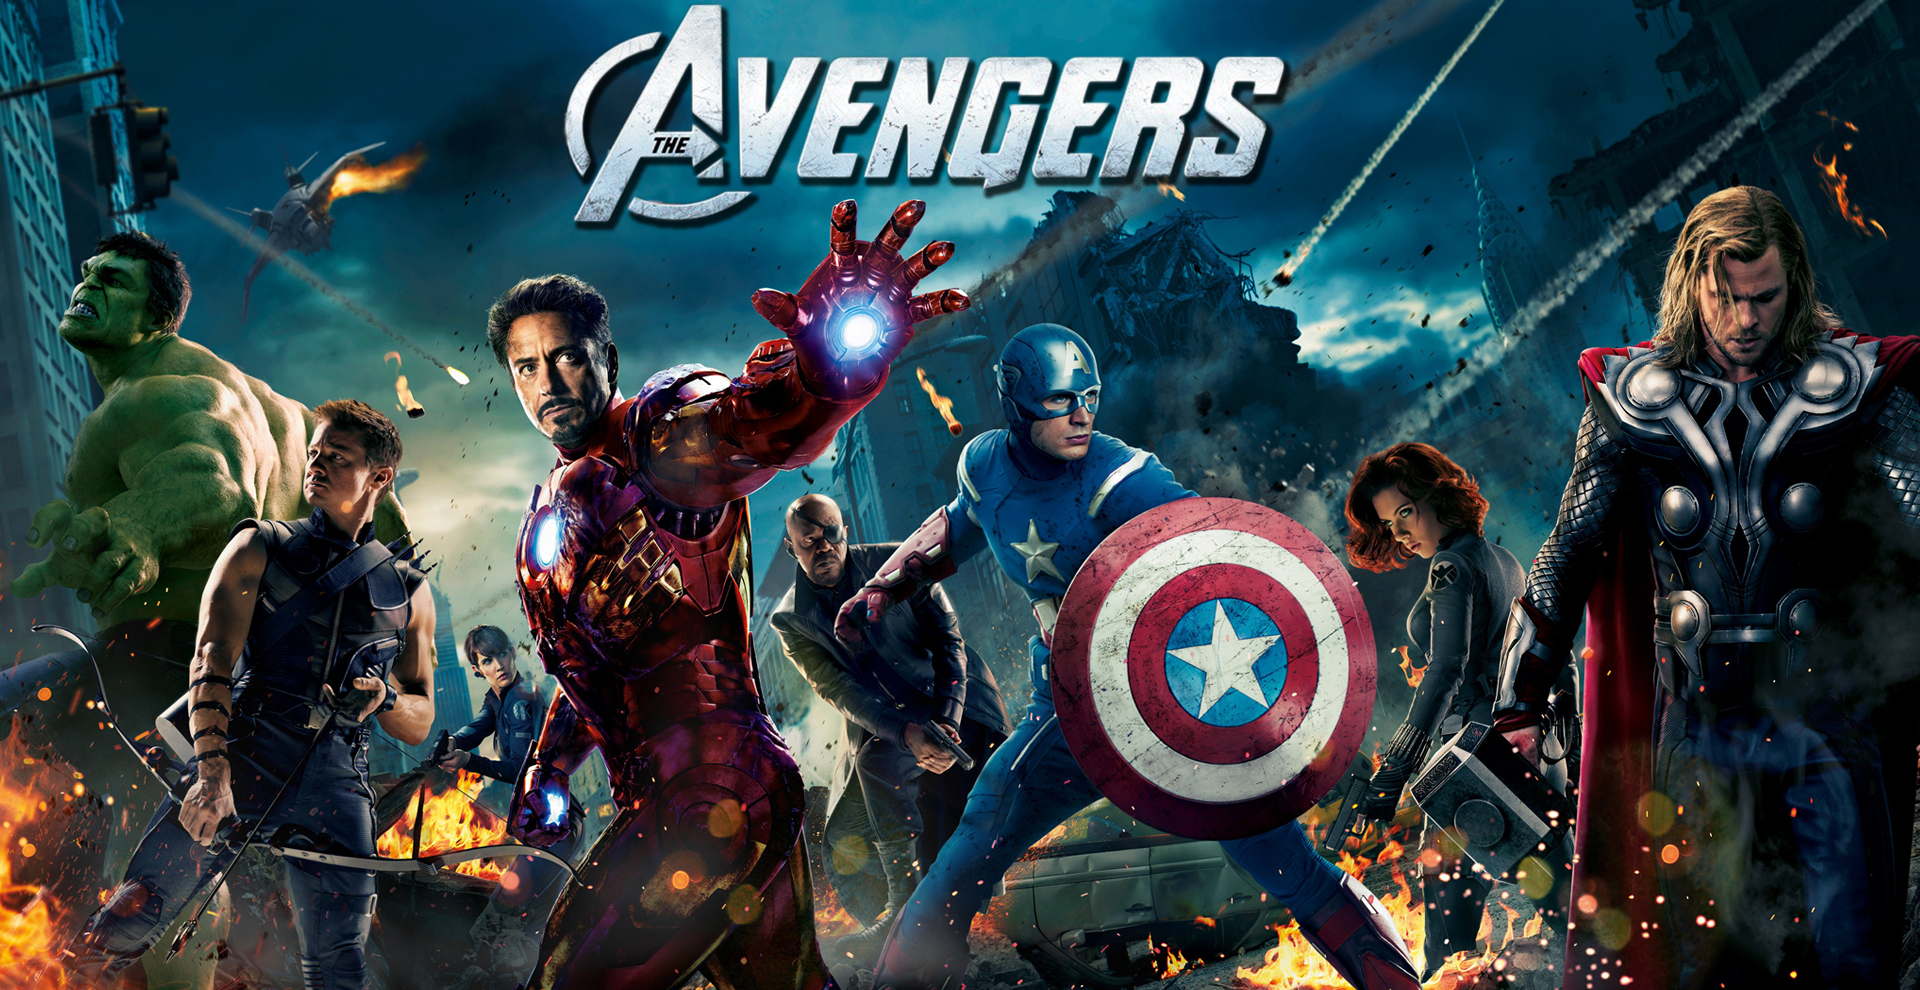 avengers 2012 free full hd download 50+ torrents in 720p 1080p